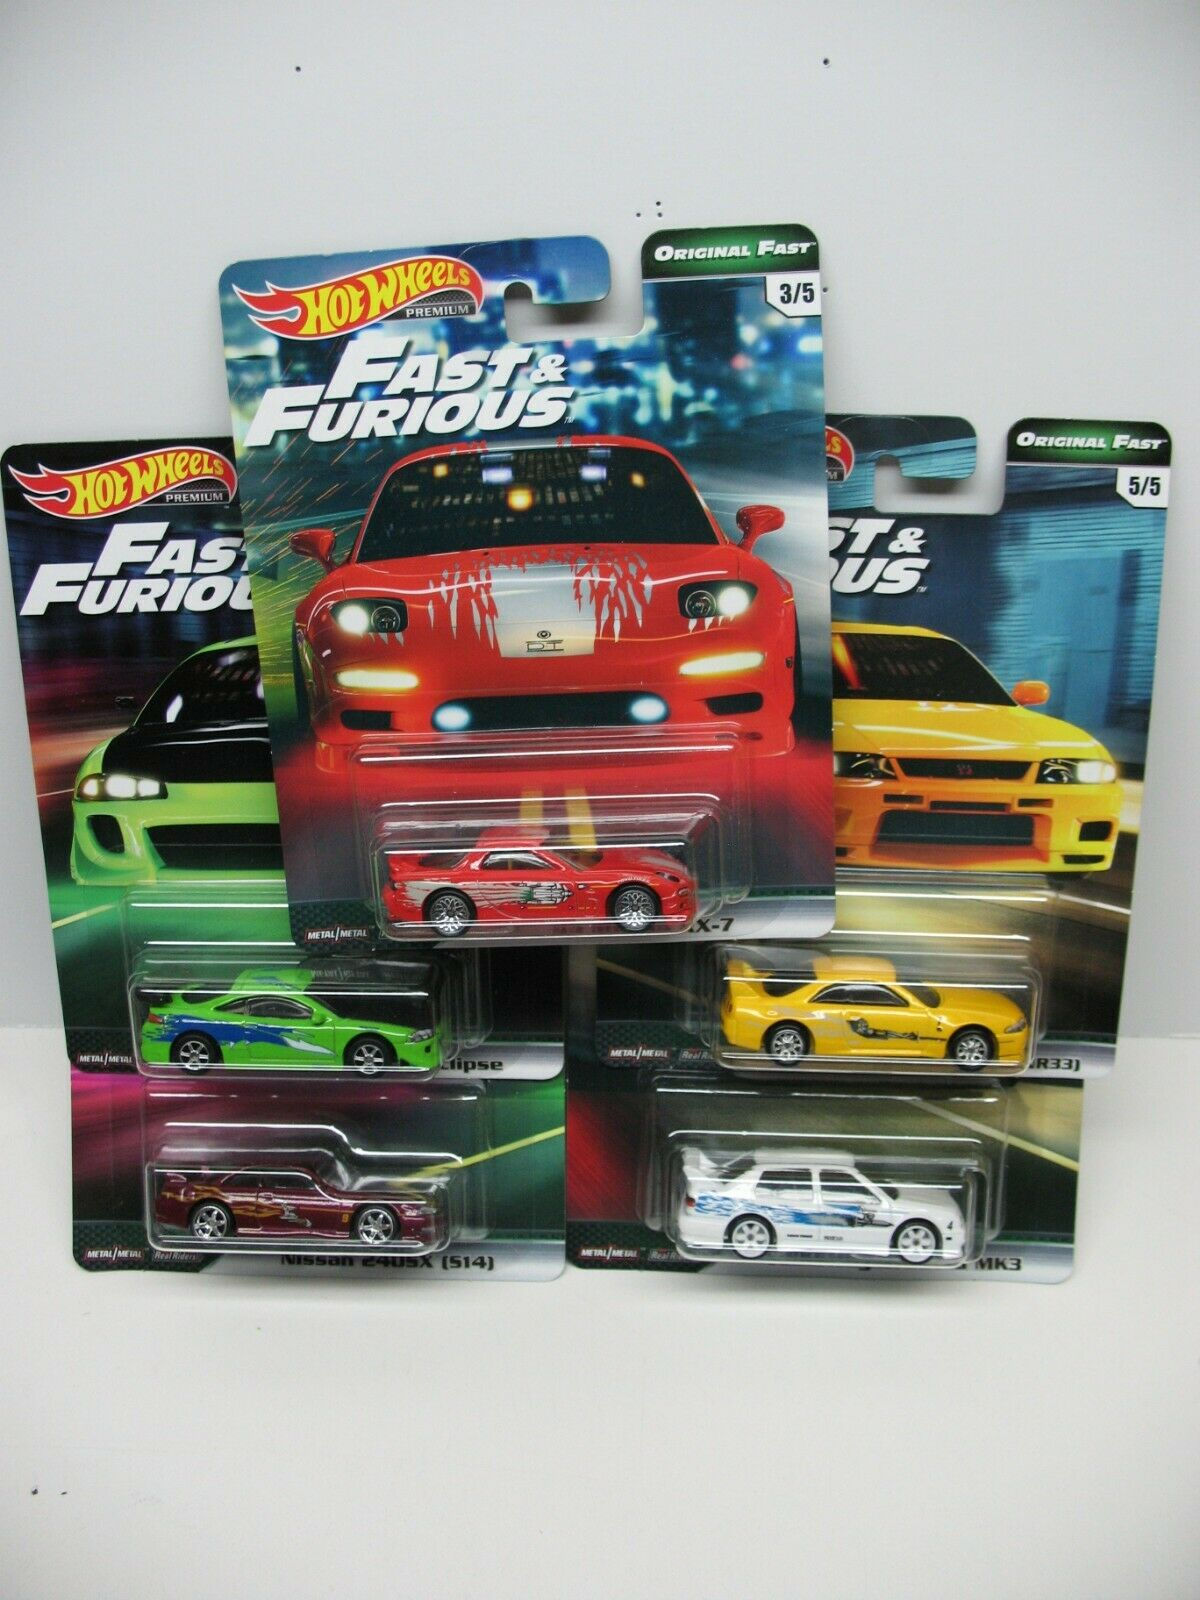 2019 HOT WHEELS PREMIUM FAST & FURIOUS ORIGINAL FAST NISSAN MAZDA VW MITSUBISHI